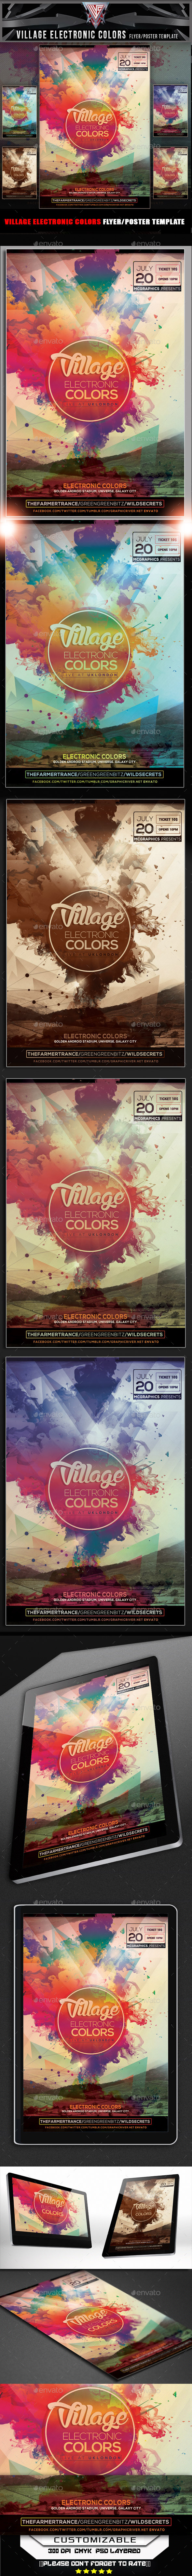 Village Electronic Colors Flyer Template - Flyers Print Templates